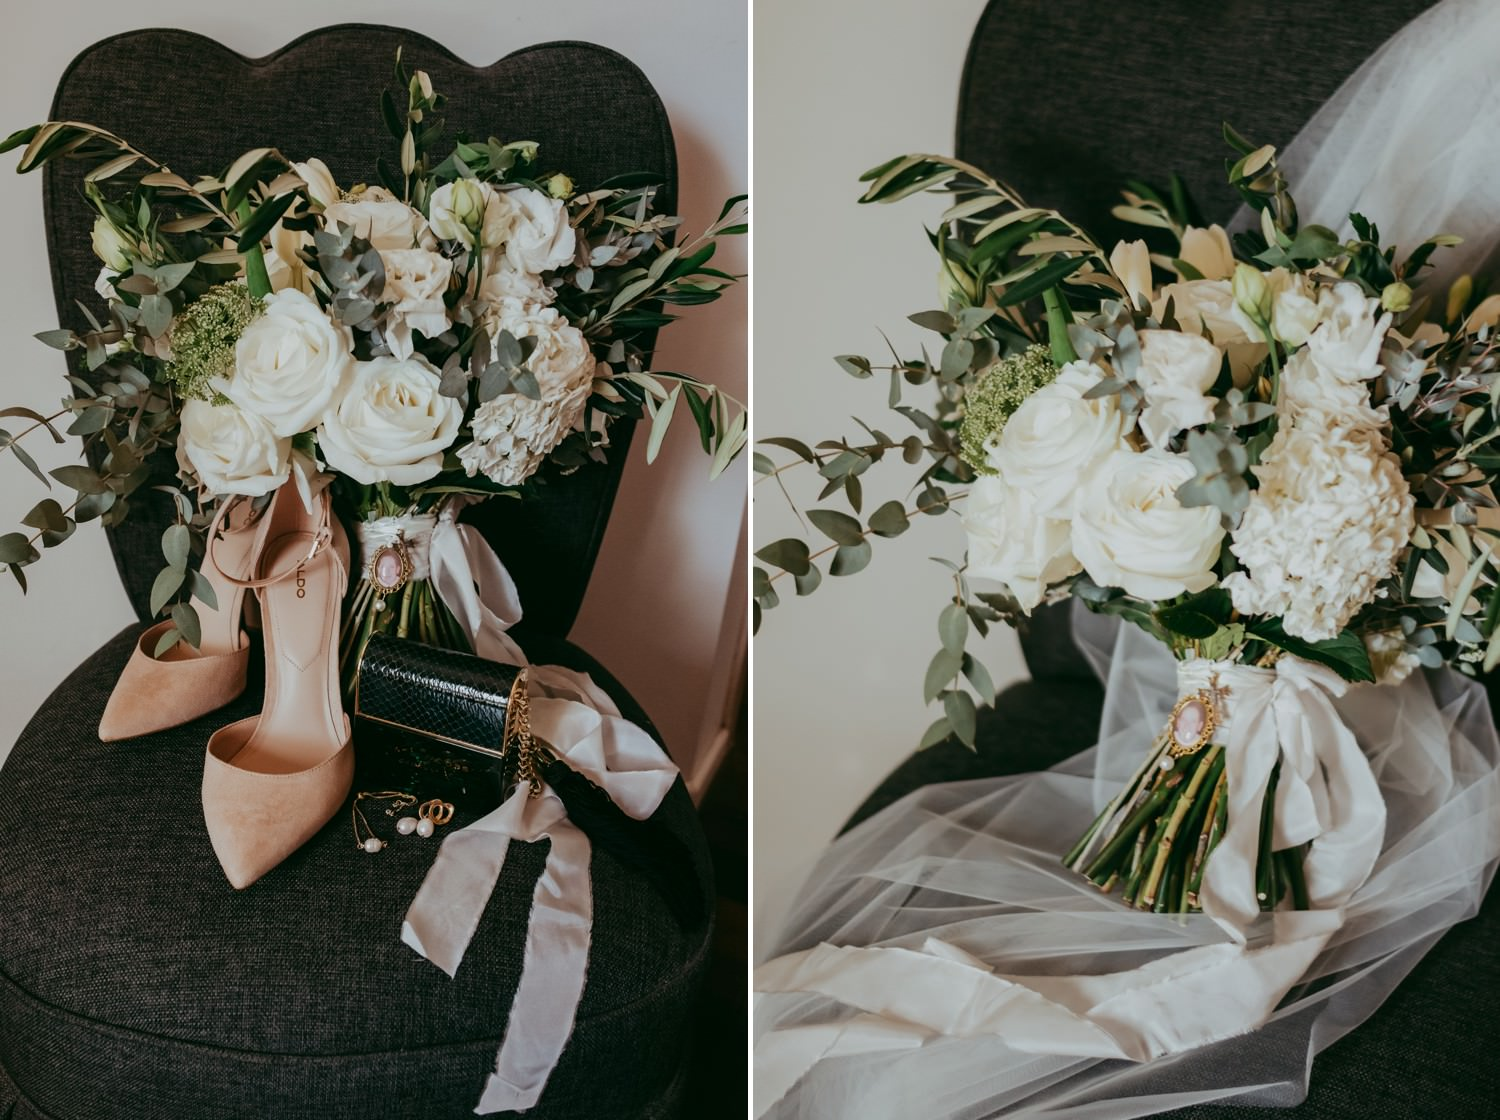 White wedding bouquet on a chair